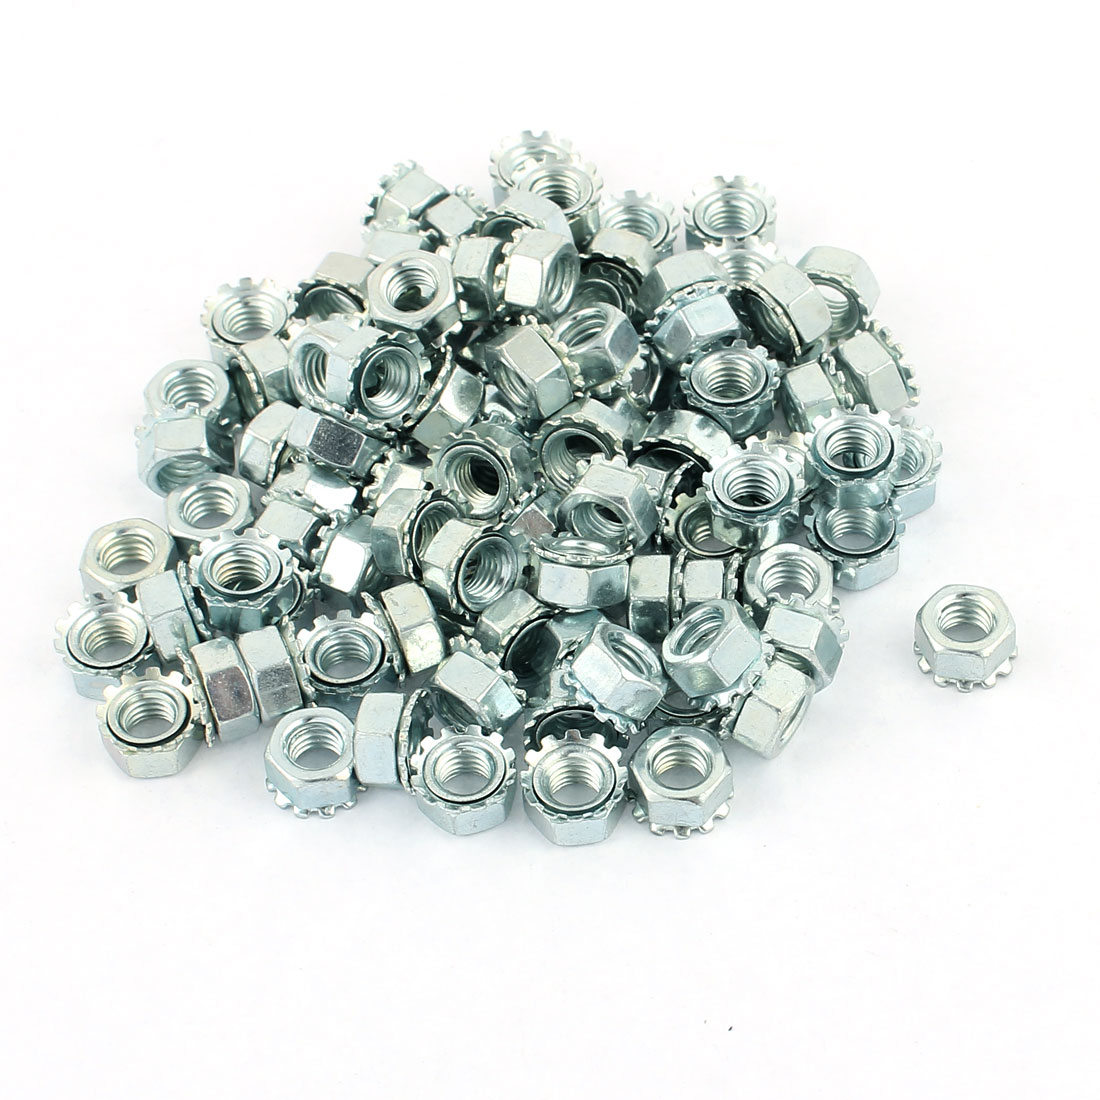 100pcs M5 Female Thread Zinc Plated Hex Star External Tooth K Lock Kep Nut